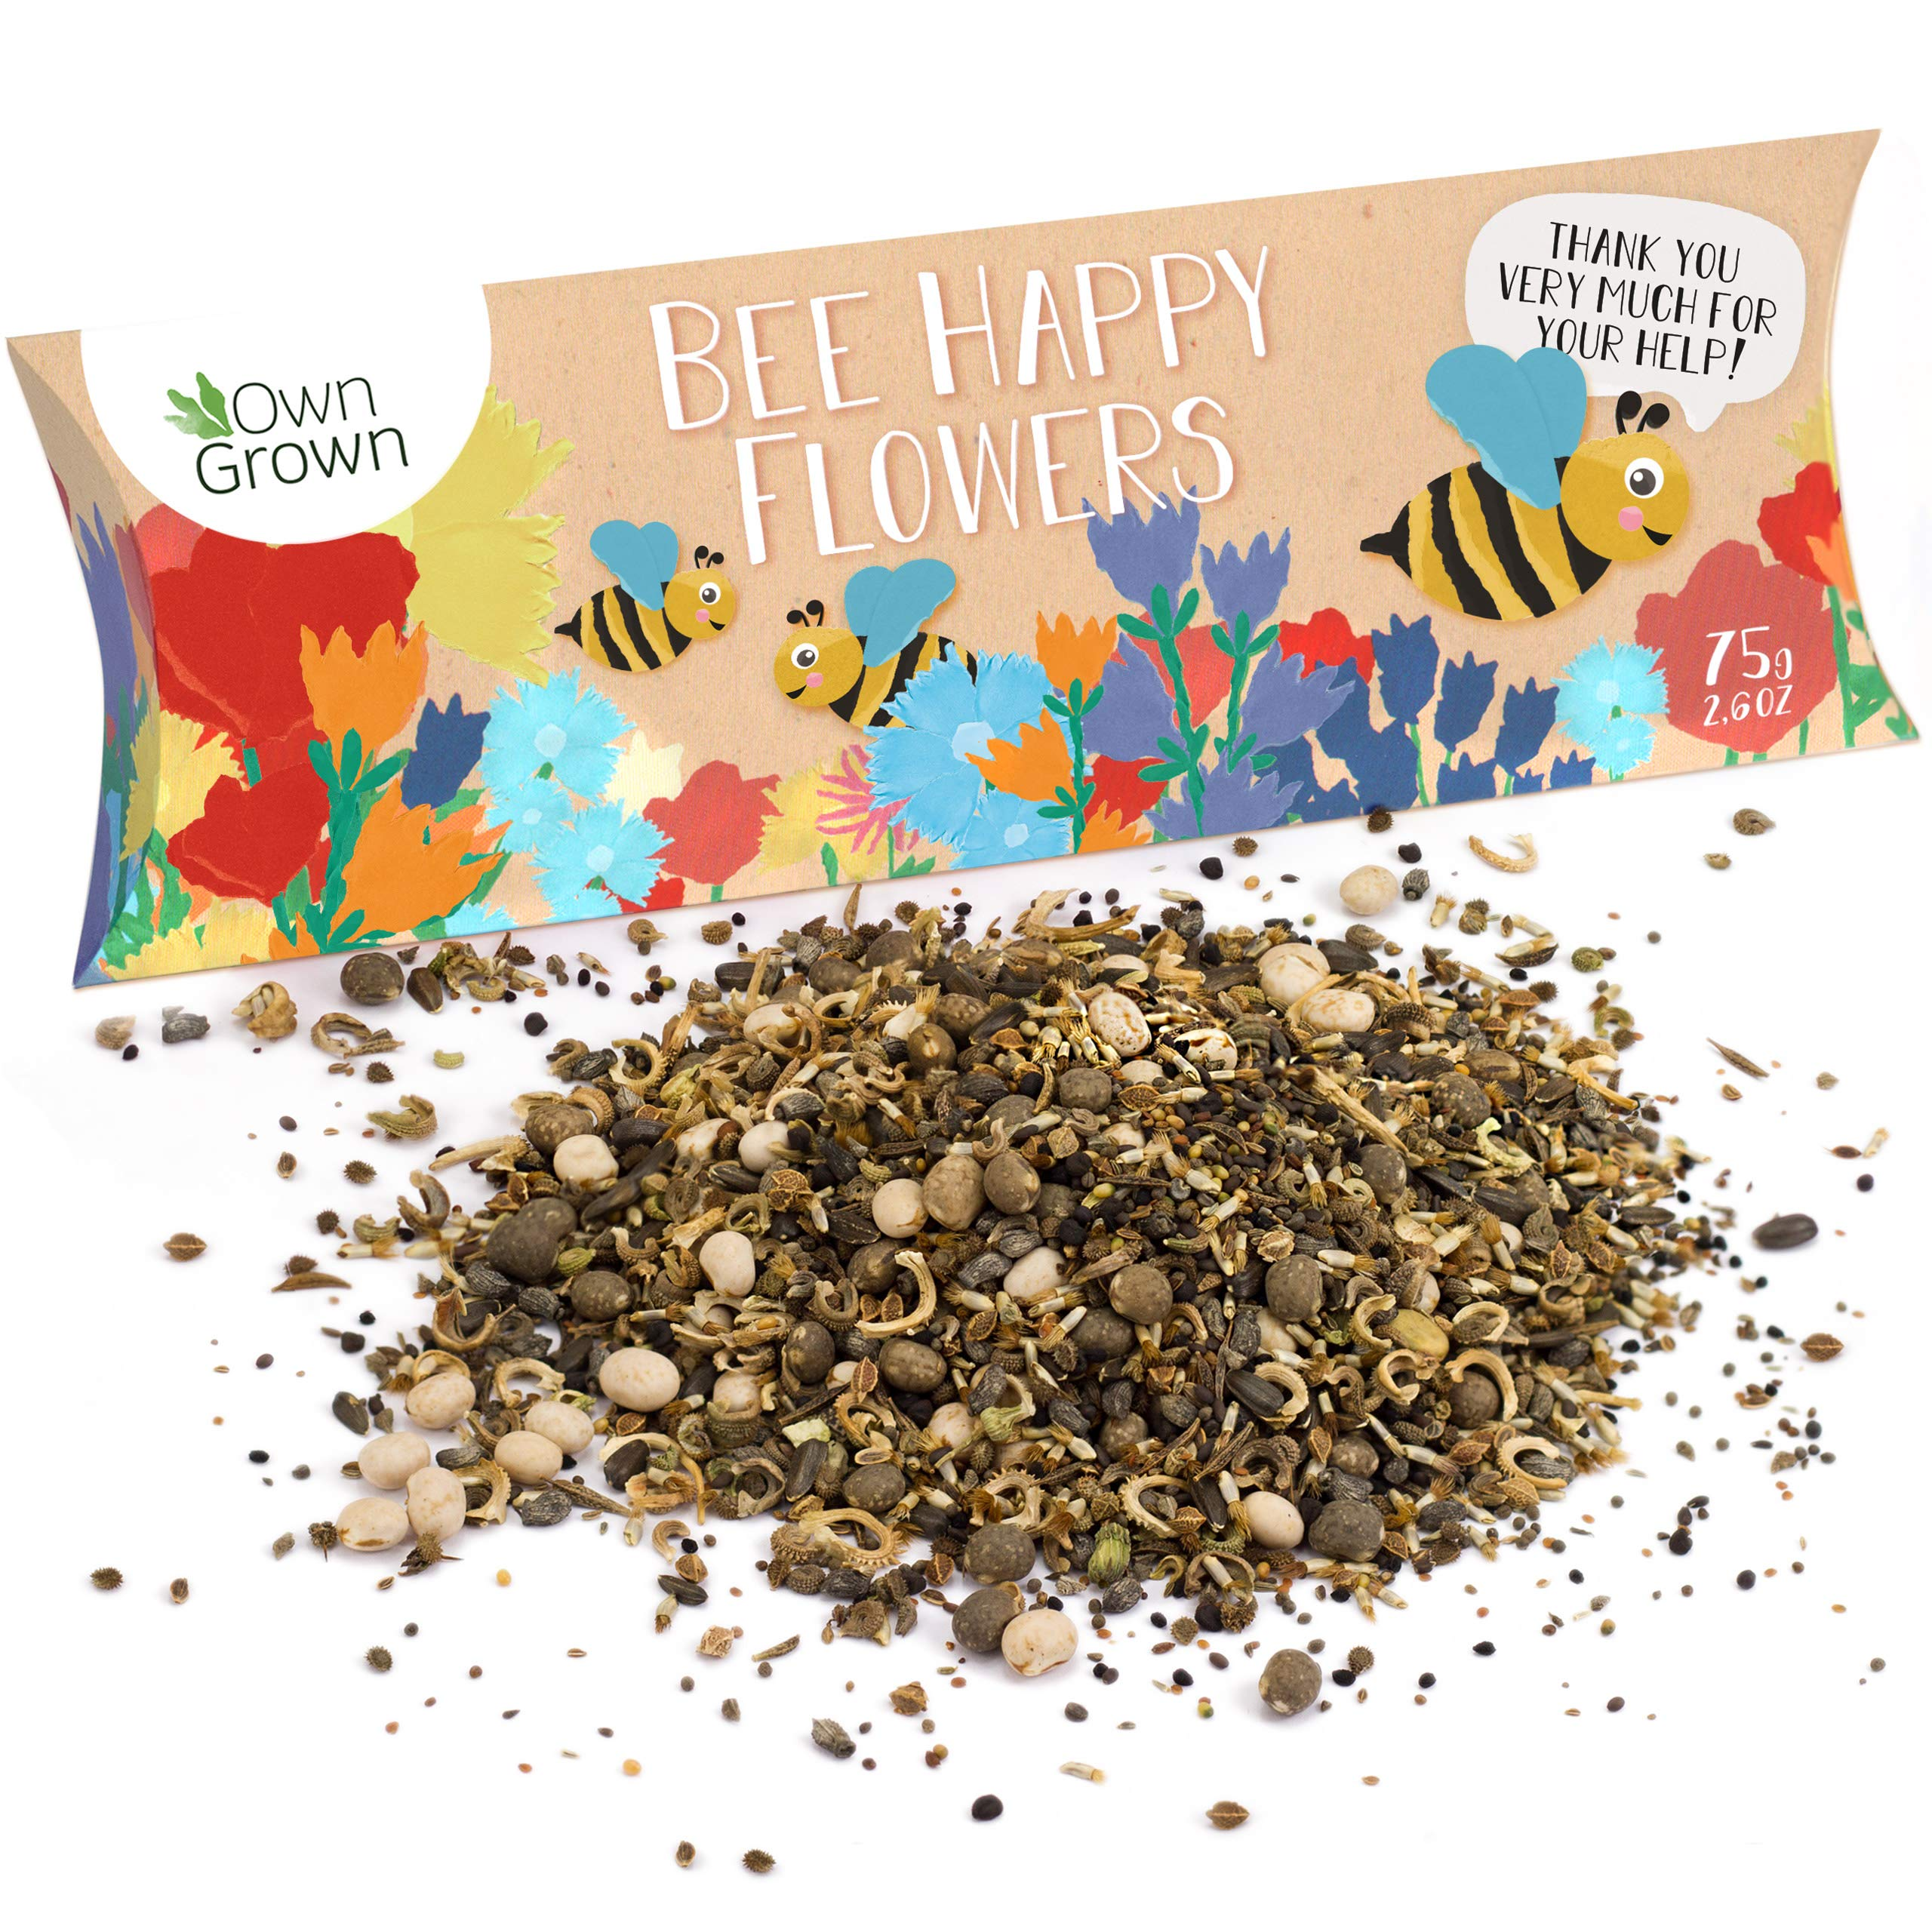 Bee Happy - Premium Bee Friendly Wildflower Seeds Mix: 100g Colourful Bee Meadow Plant Seeds for 50-100 sqm - Bee Flower Garden Seeds - Flowers for Garden - Seeds for Gardening Flowers by OwnGrown